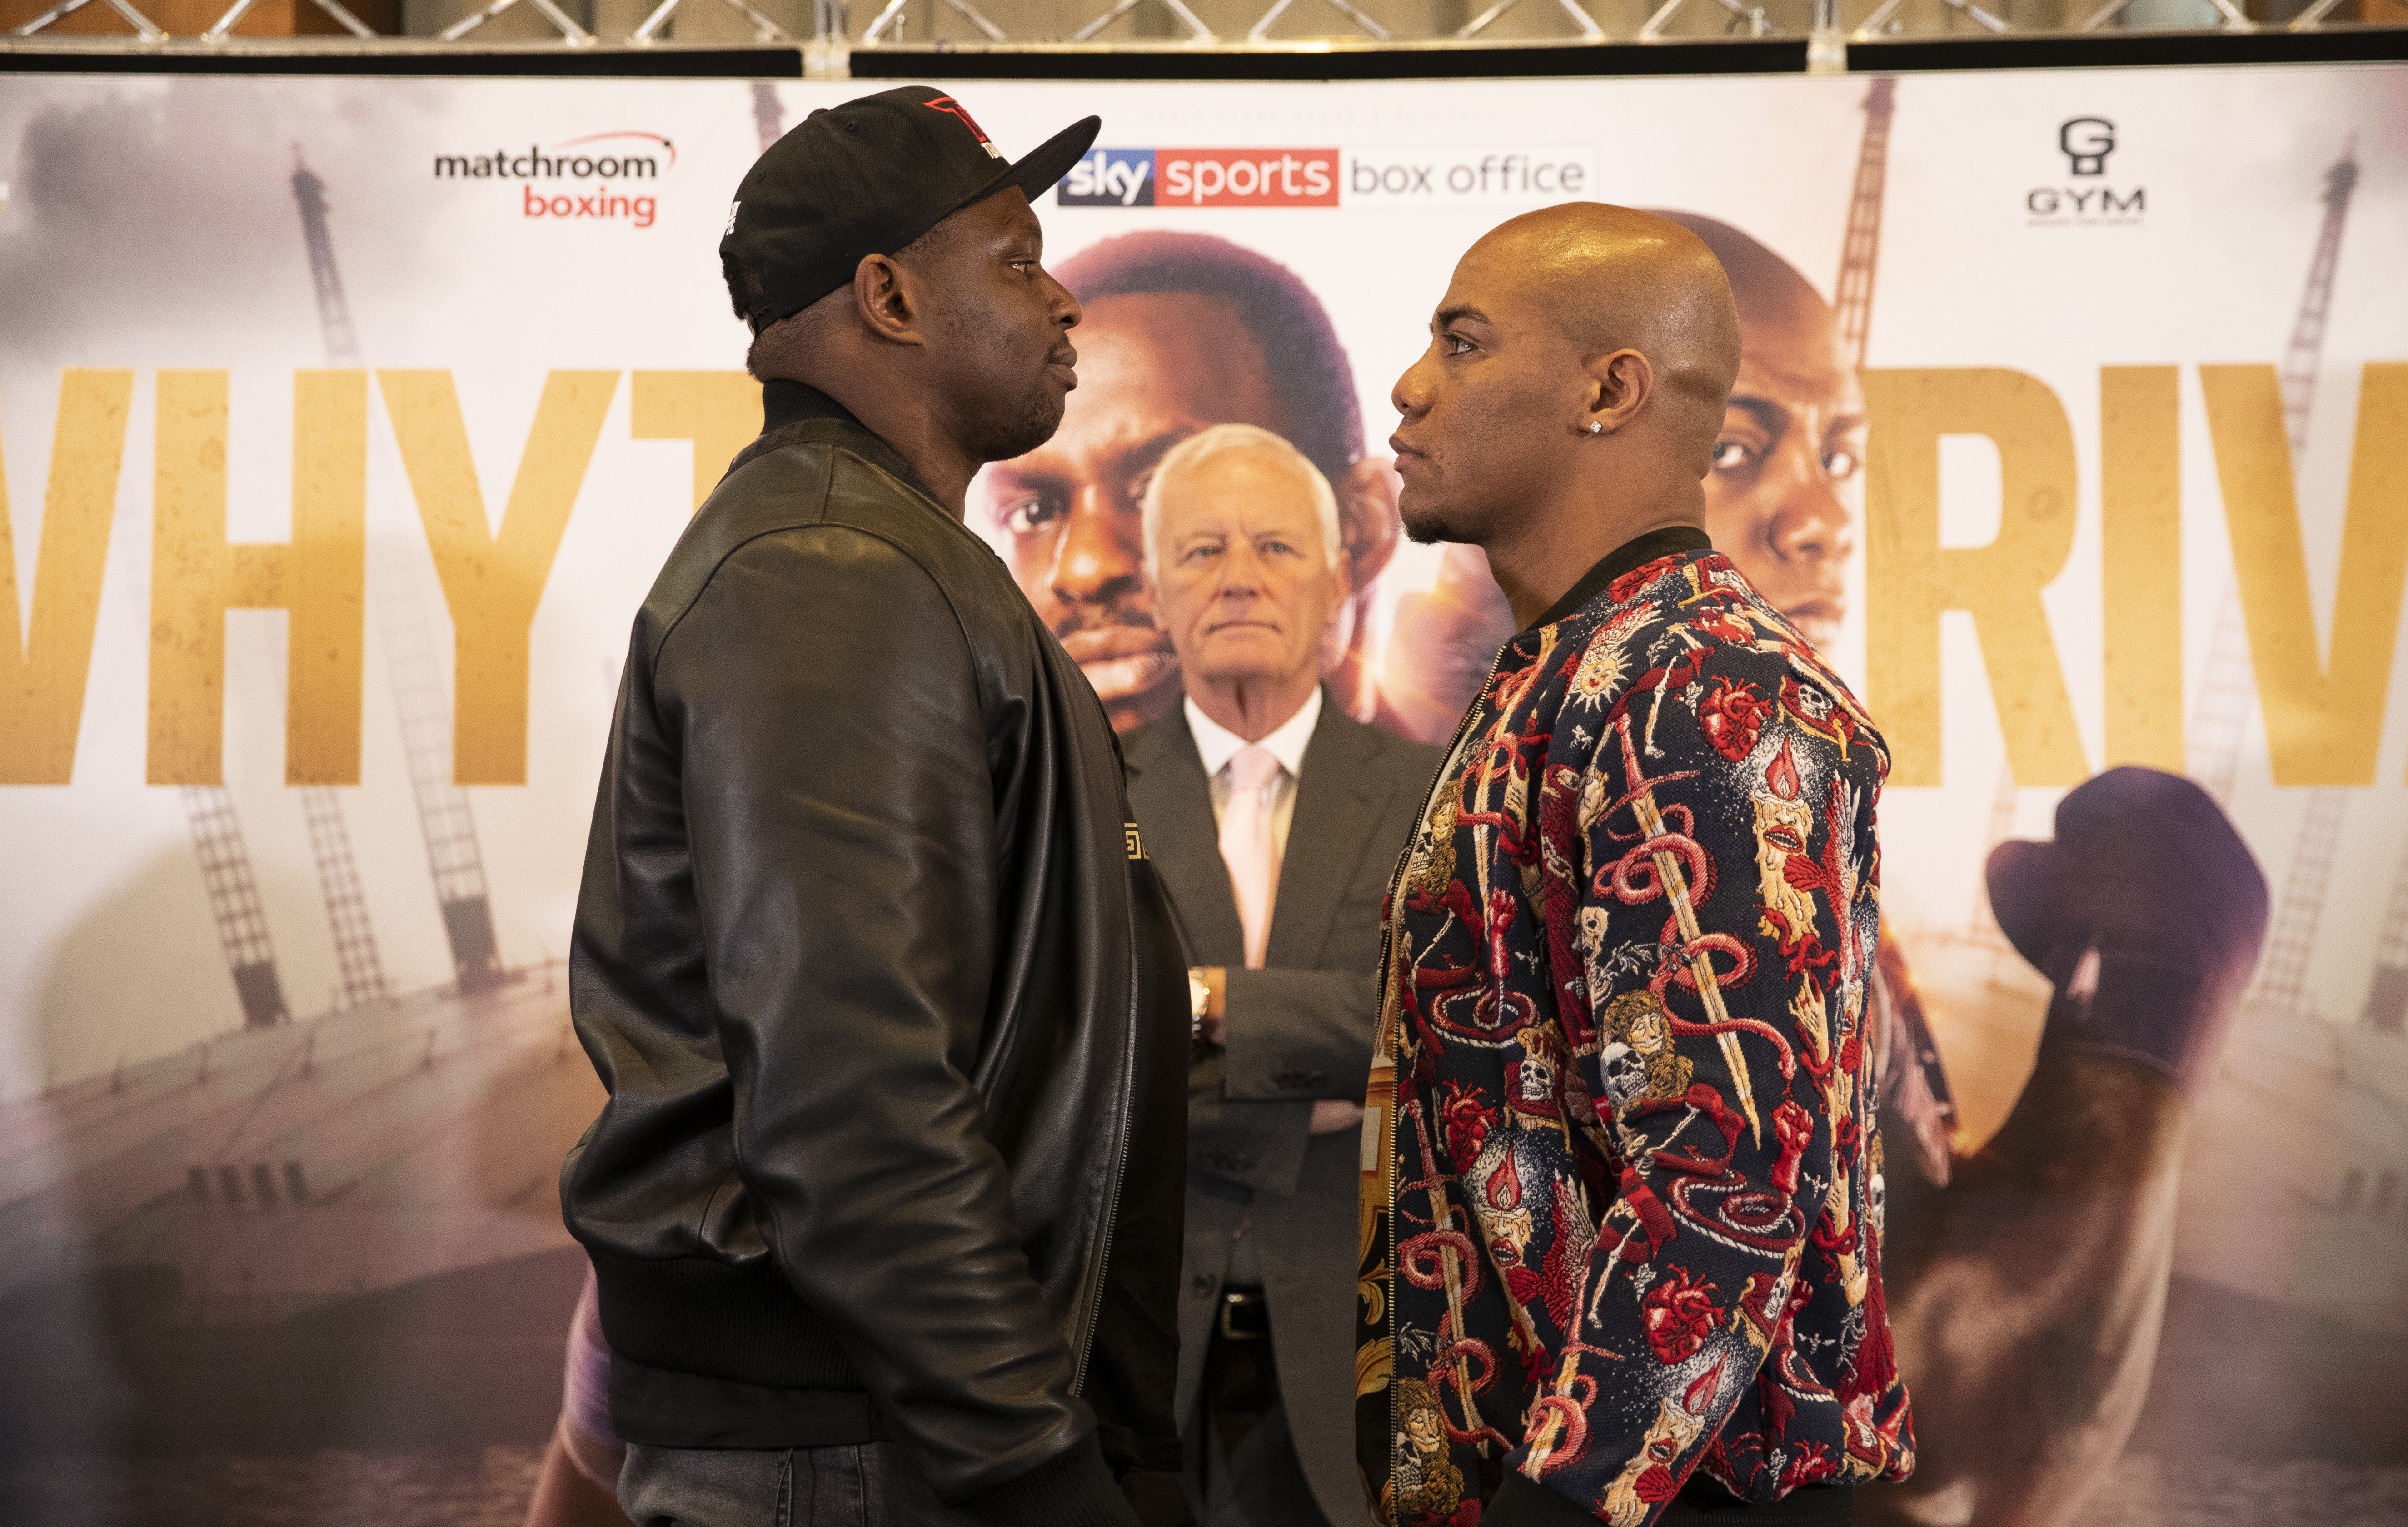 Dillian Whyte vs. Oscar Rivas: Fight date, price, how to watch, live stream full card